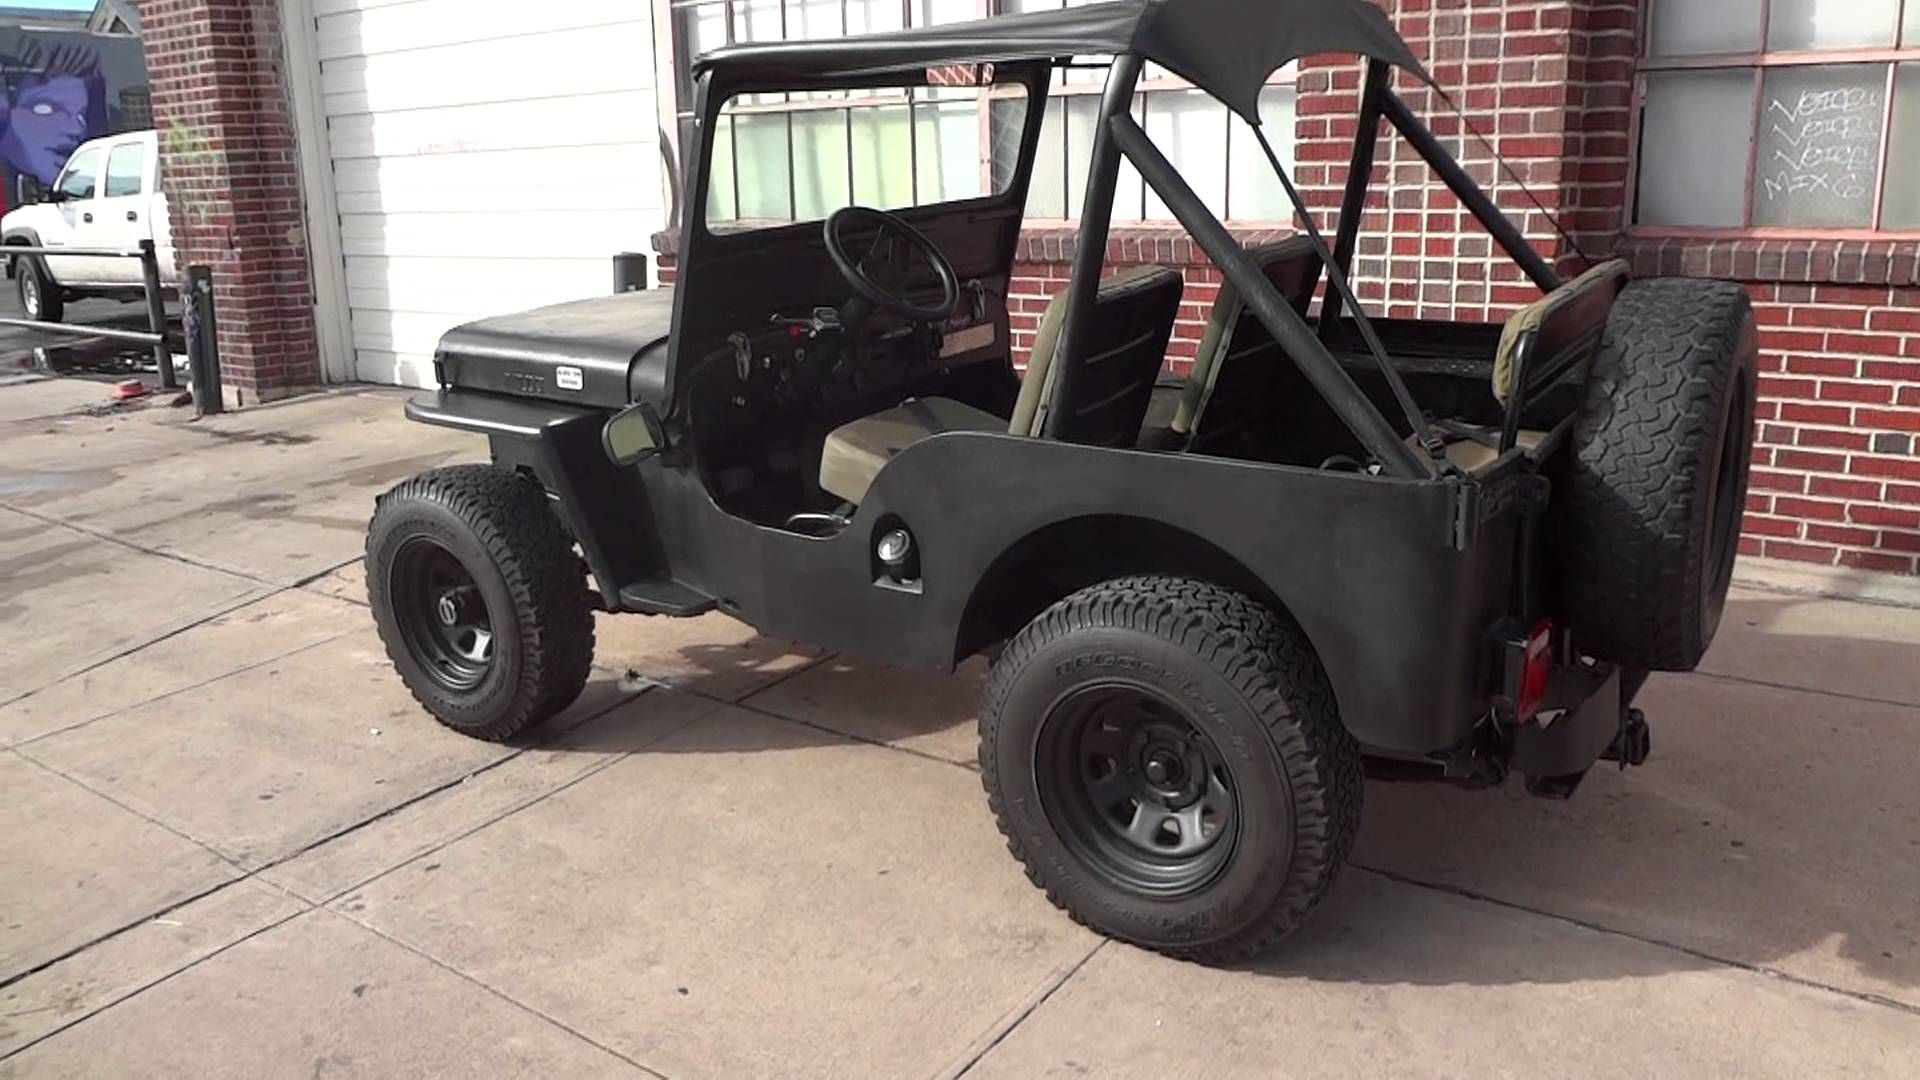 1951 Willys Jeep Navy Seals Black Ops Edition For Sale Willys Jeep Willys Jeep